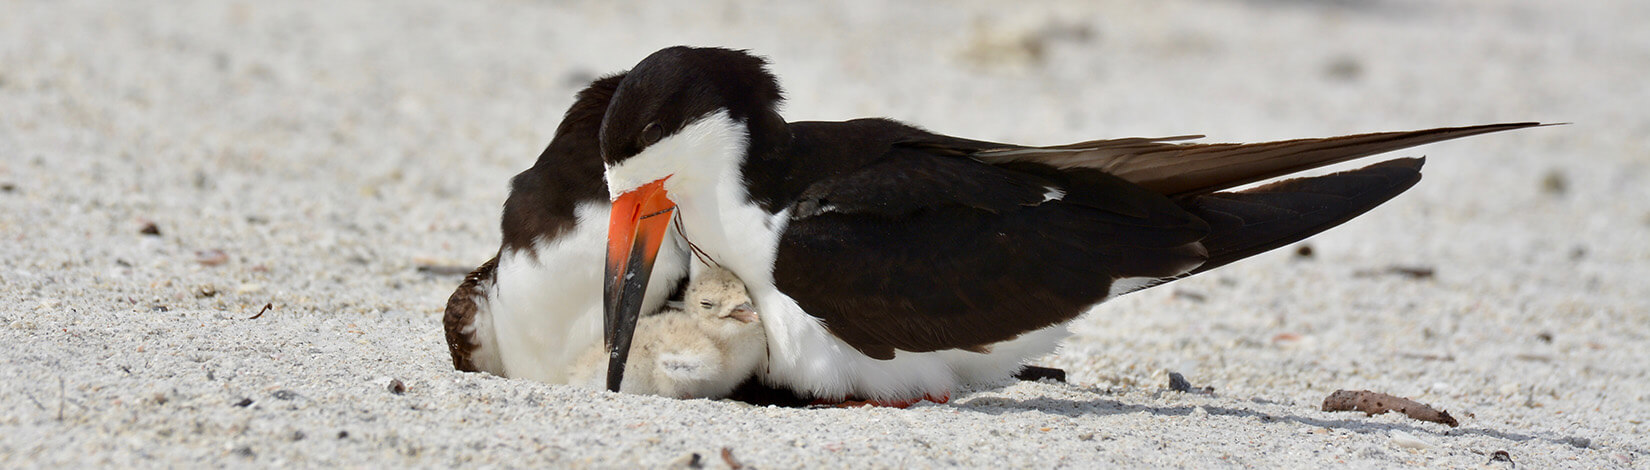 photo of a mother bird cuddling her chick